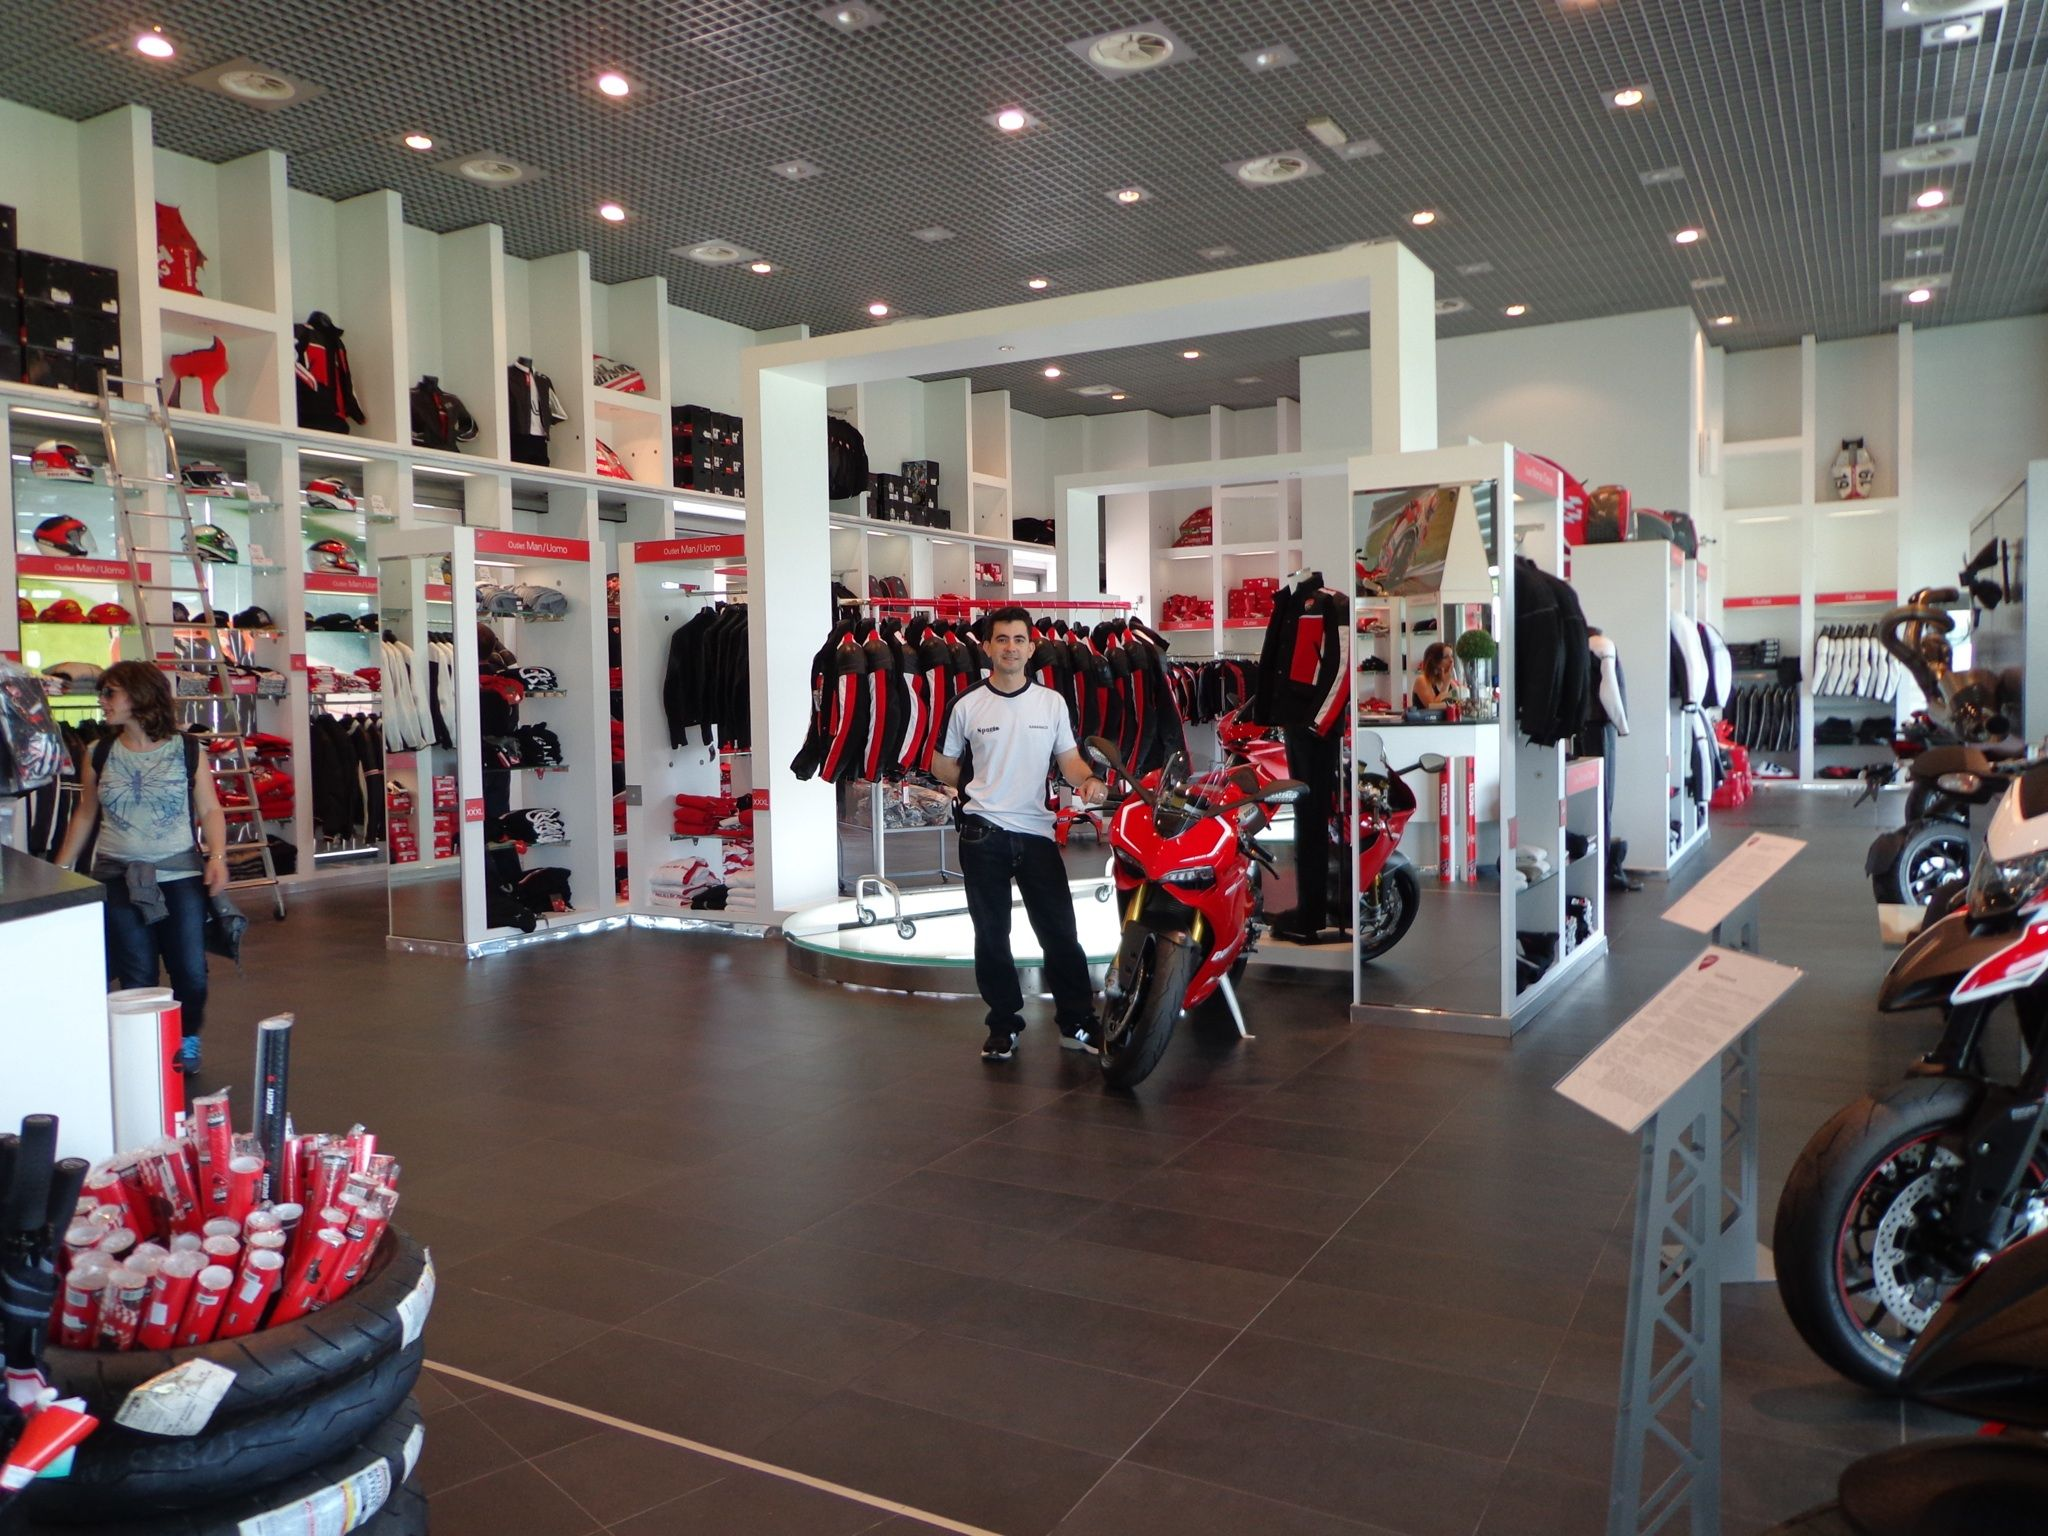 bologna ducati factory store no pictures were allowed inside the factory in 2019 ducati. Black Bedroom Furniture Sets. Home Design Ideas